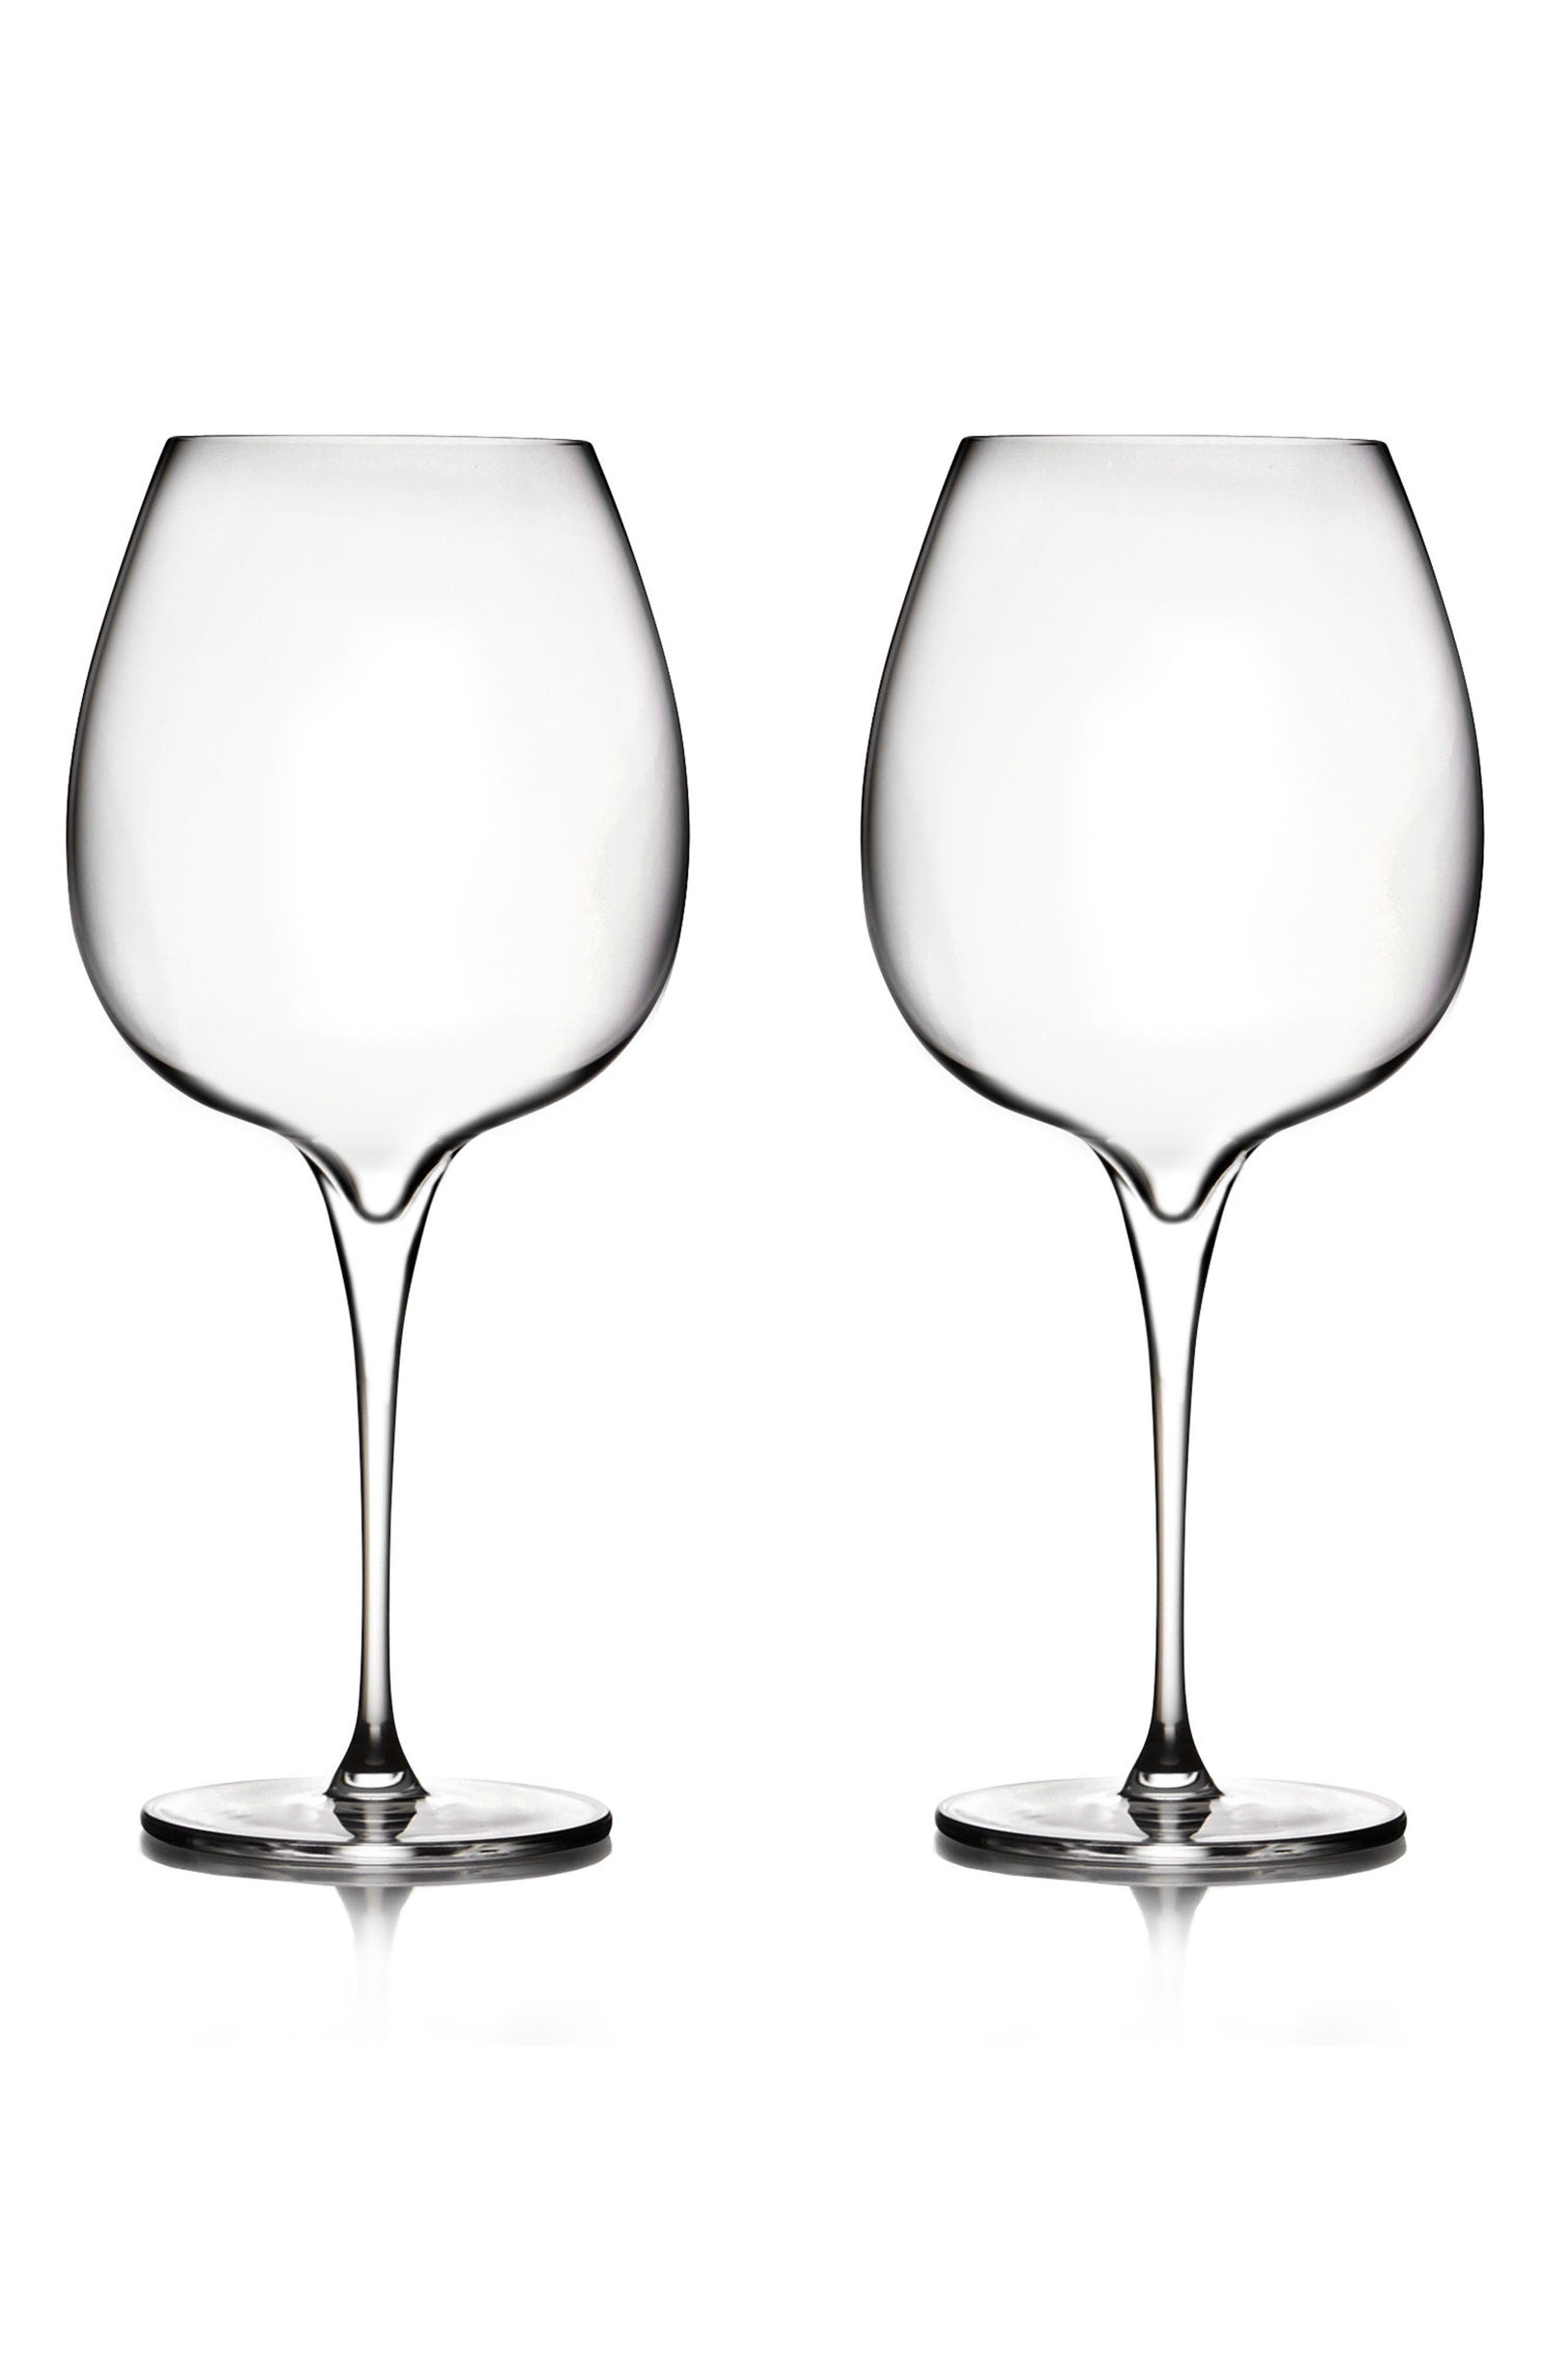 Vie Set of 2 Pinot Noir Glasses,                             Main thumbnail 1, color,                             Clear